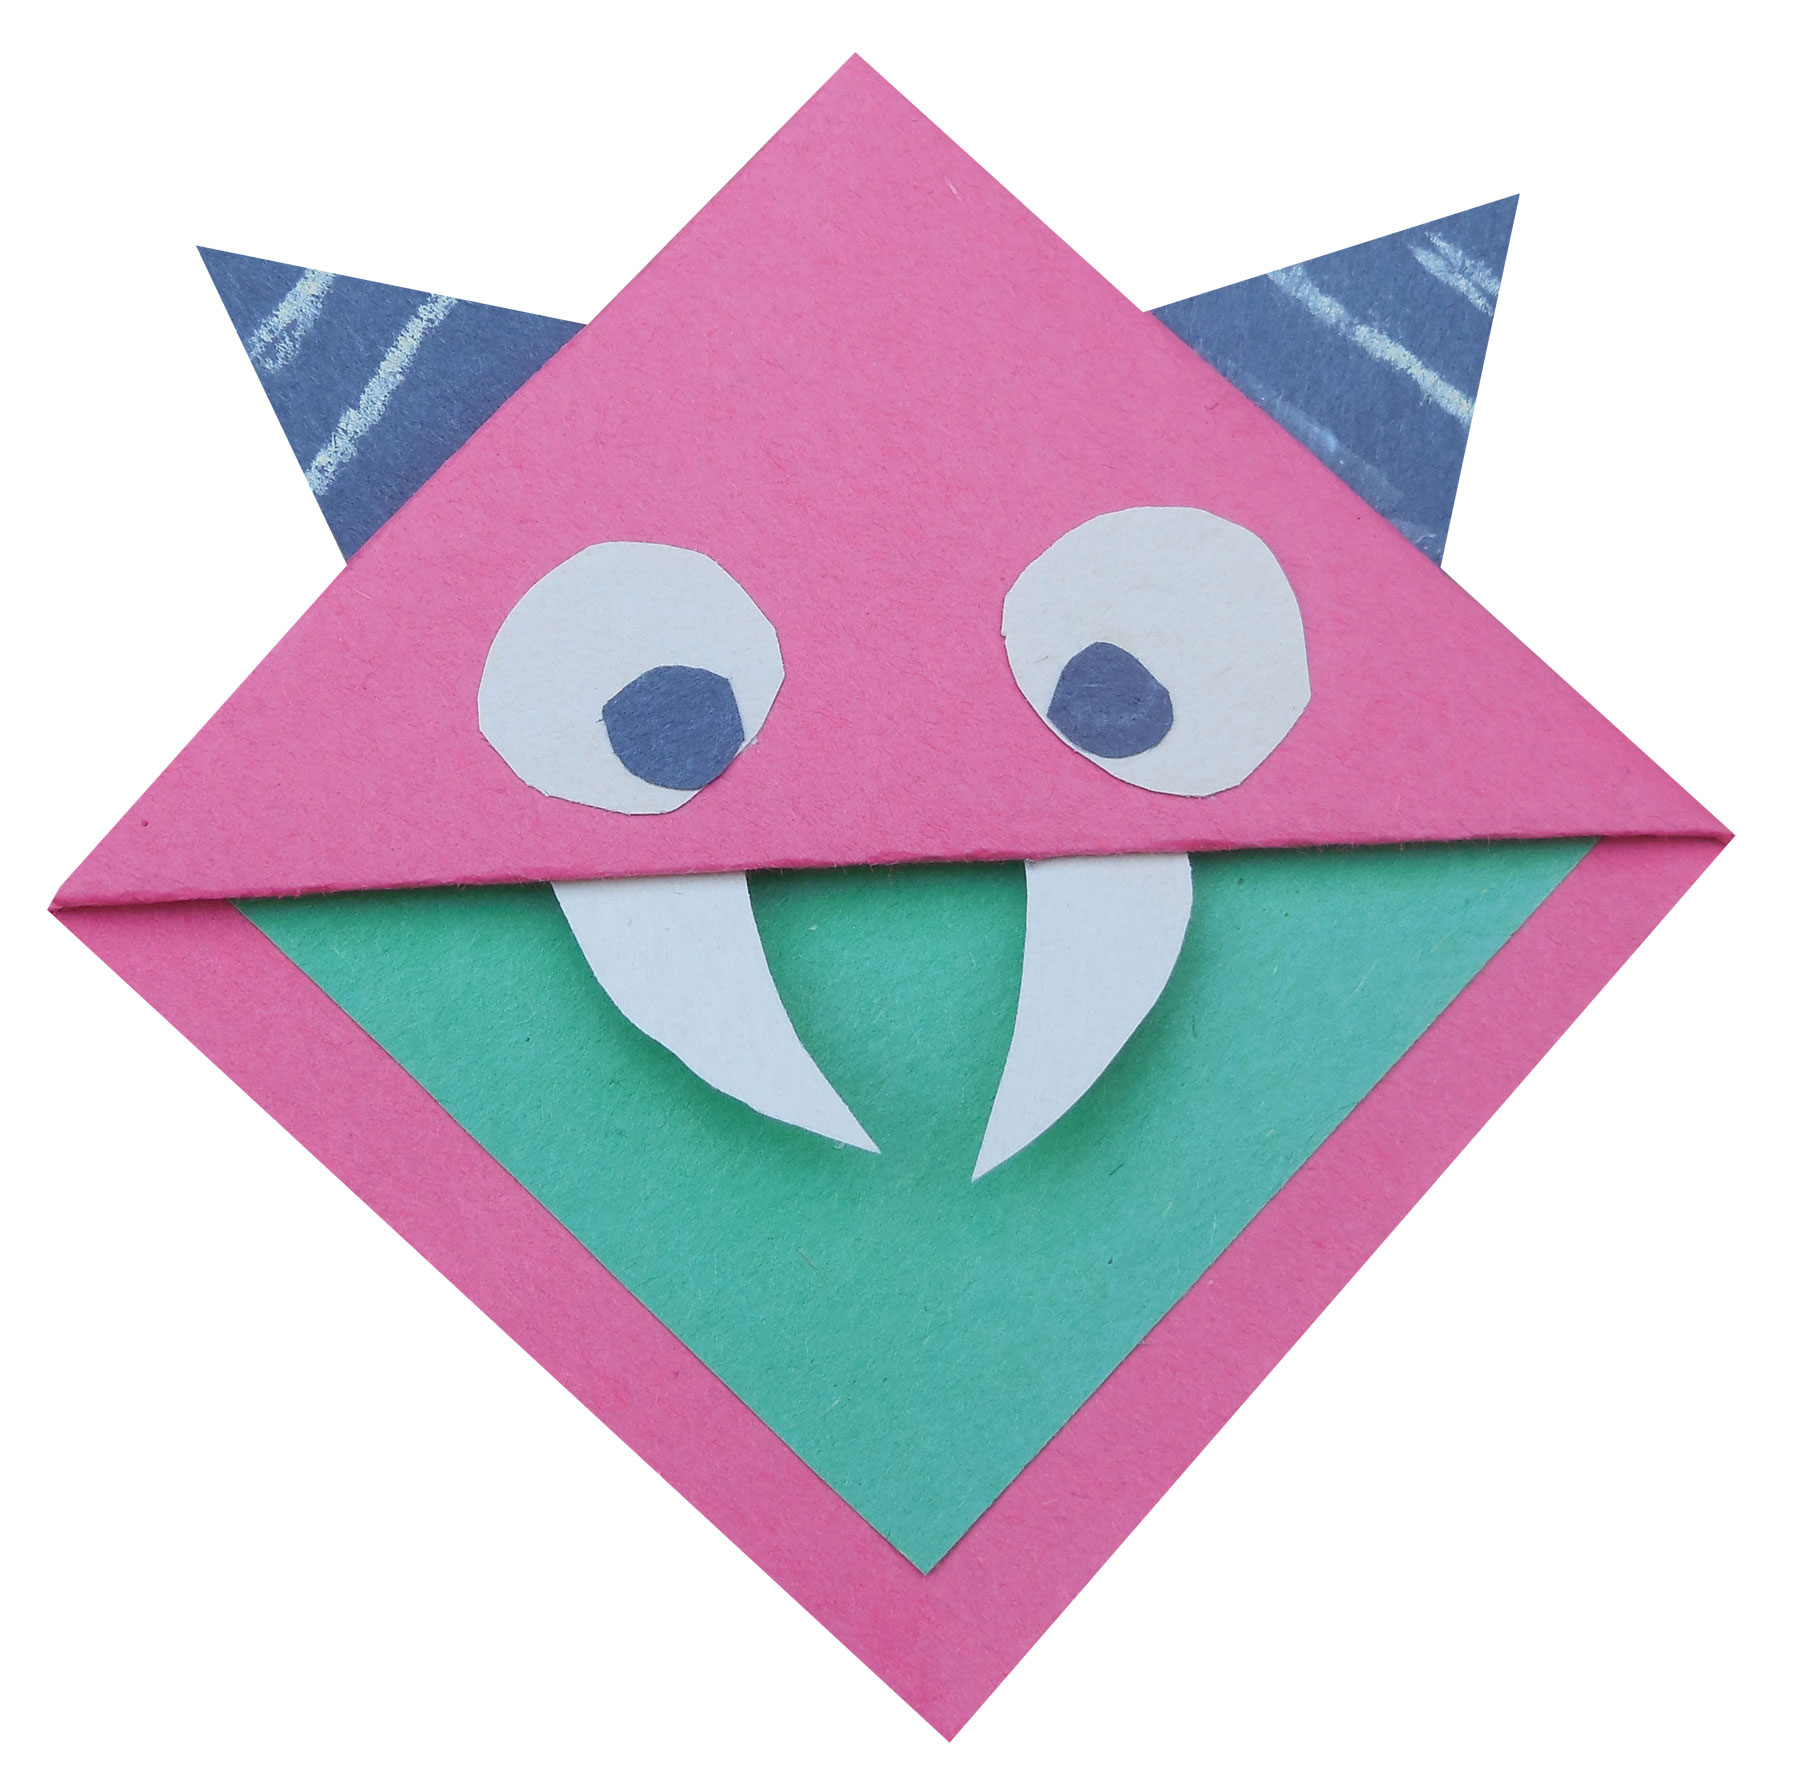 Simple and Cute Construction Paper Crafts for Kids Crafts Bazoof Magazine